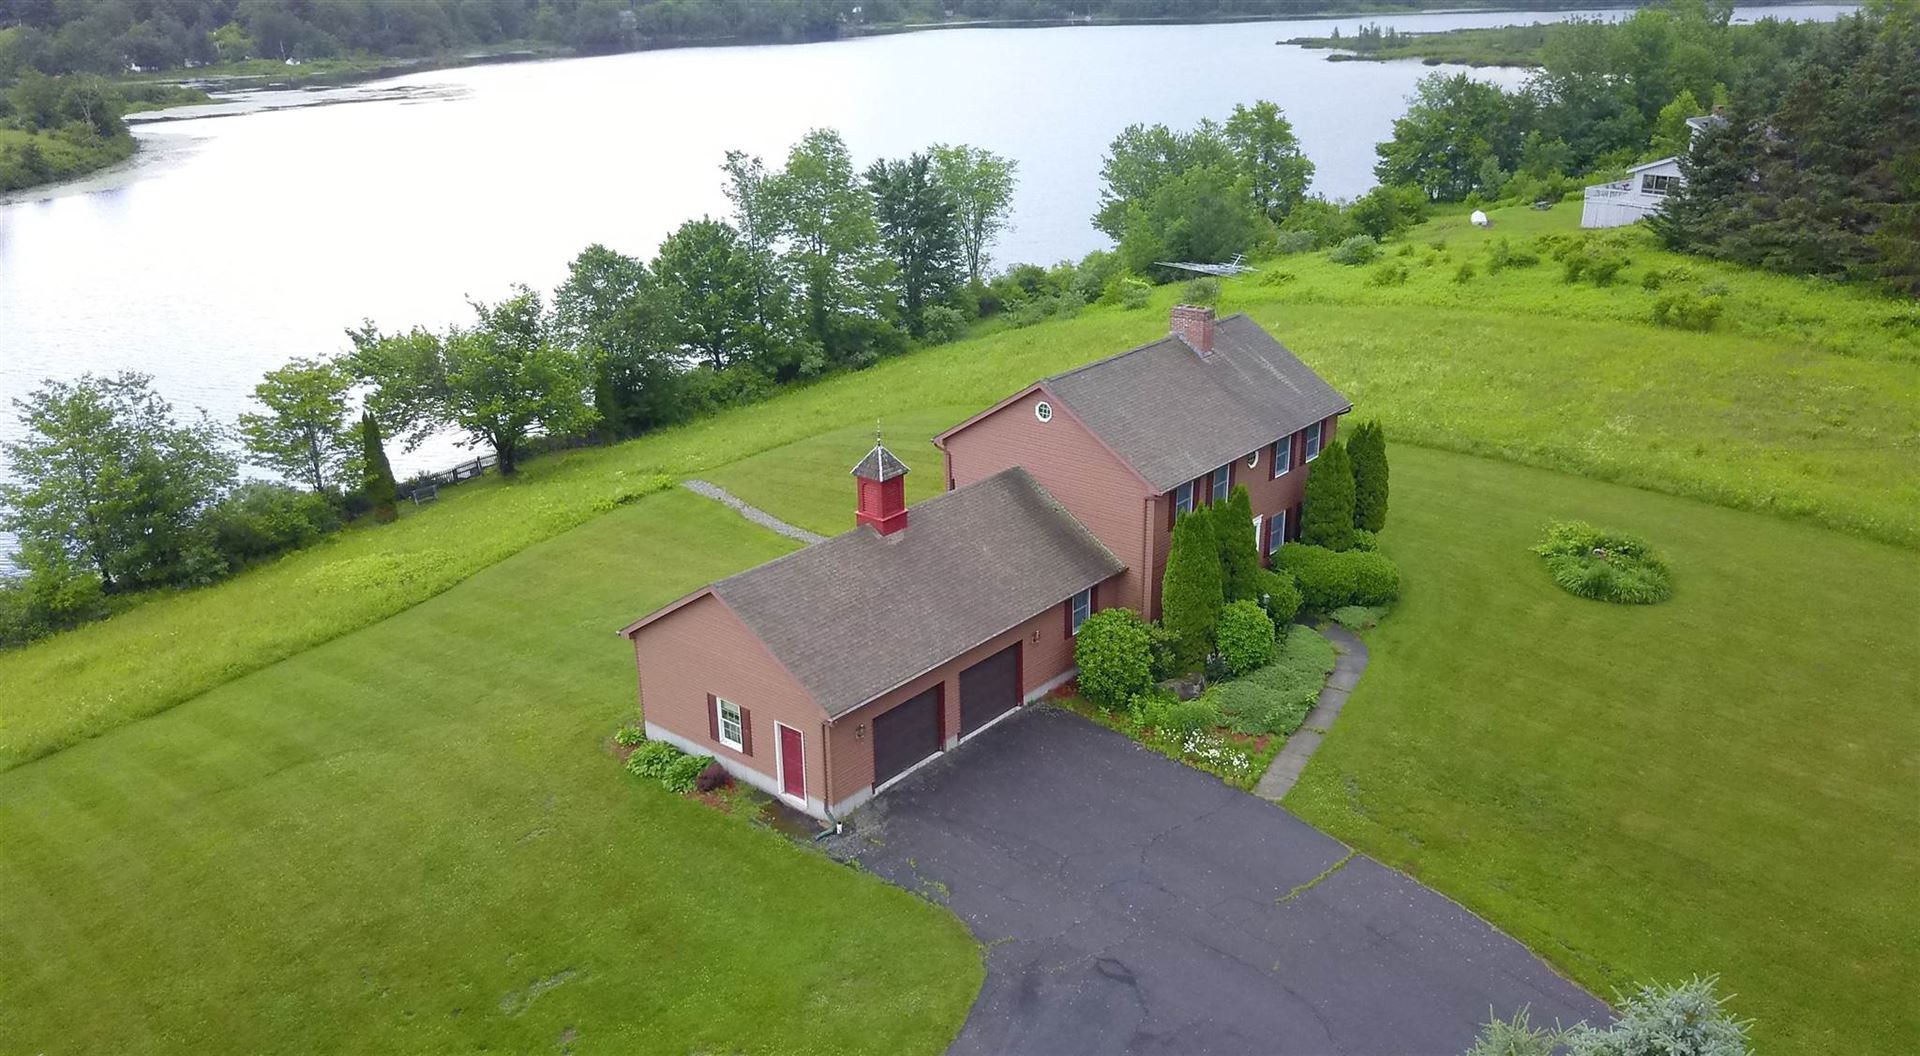 193 Tyanoga Road, Whitingham, VT 05361 - MLS#: 4814536